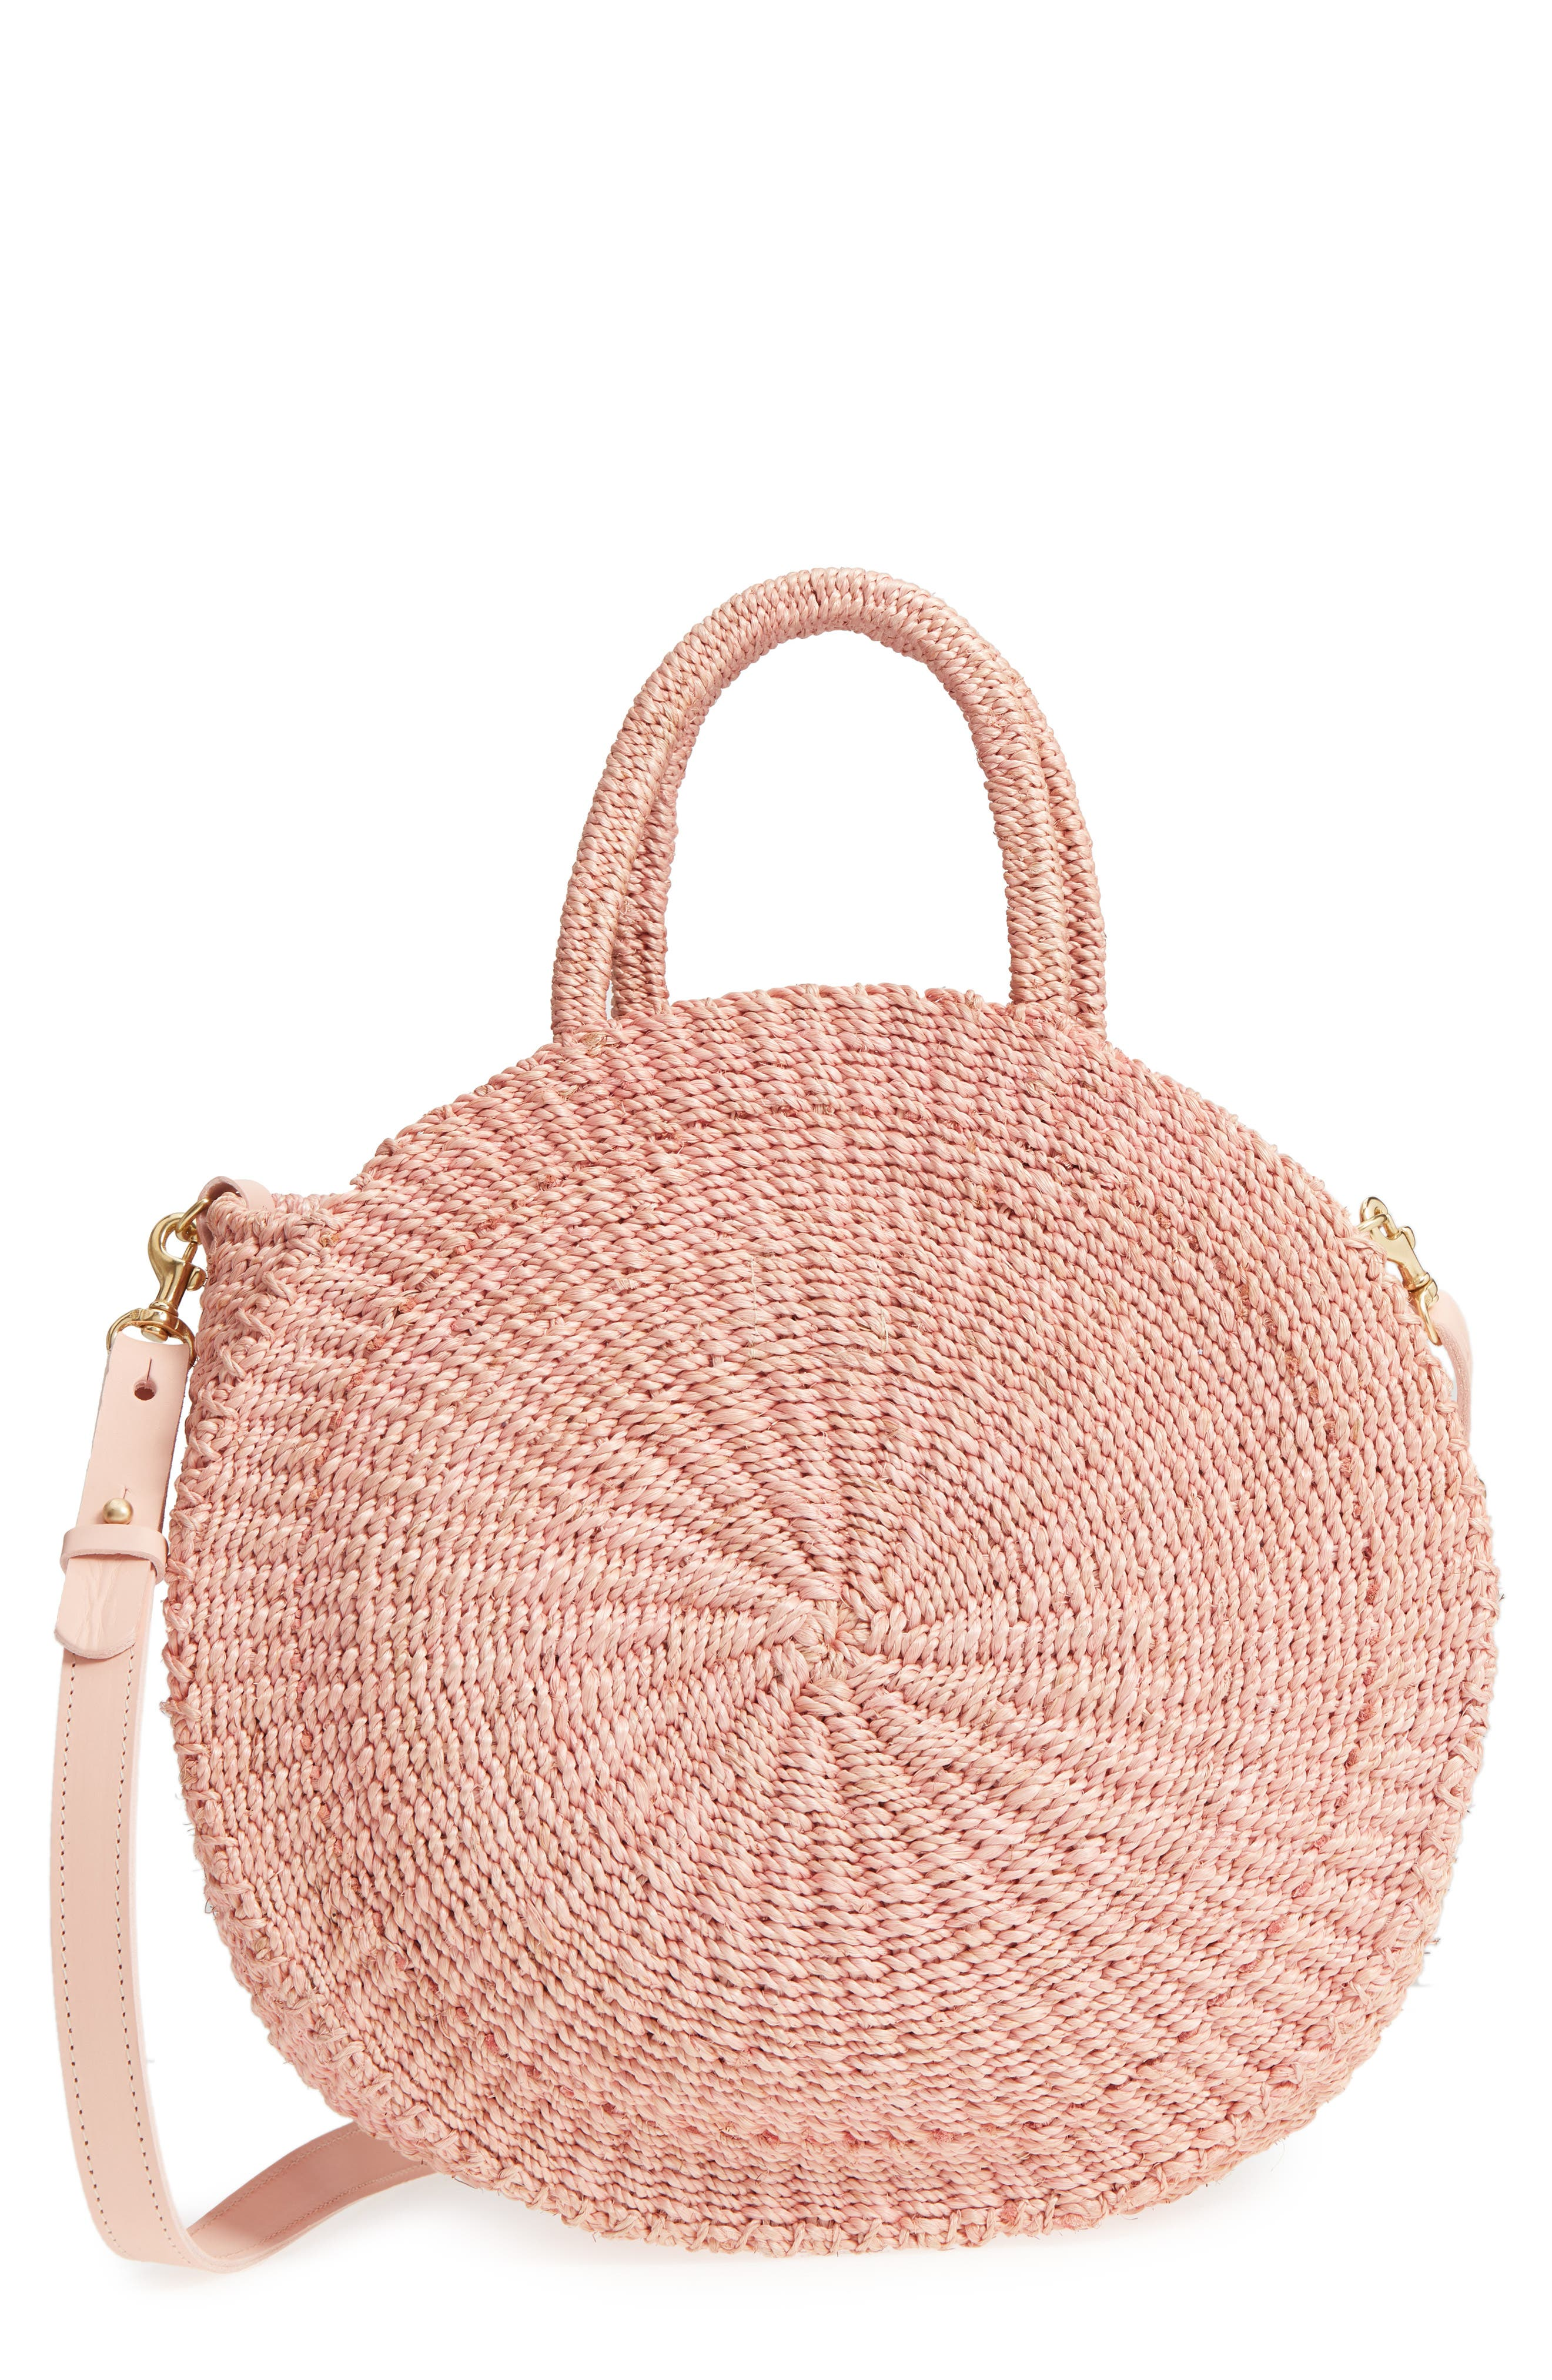 Clare V ALICE WOVEN SISAL STRAW BAG - PINK